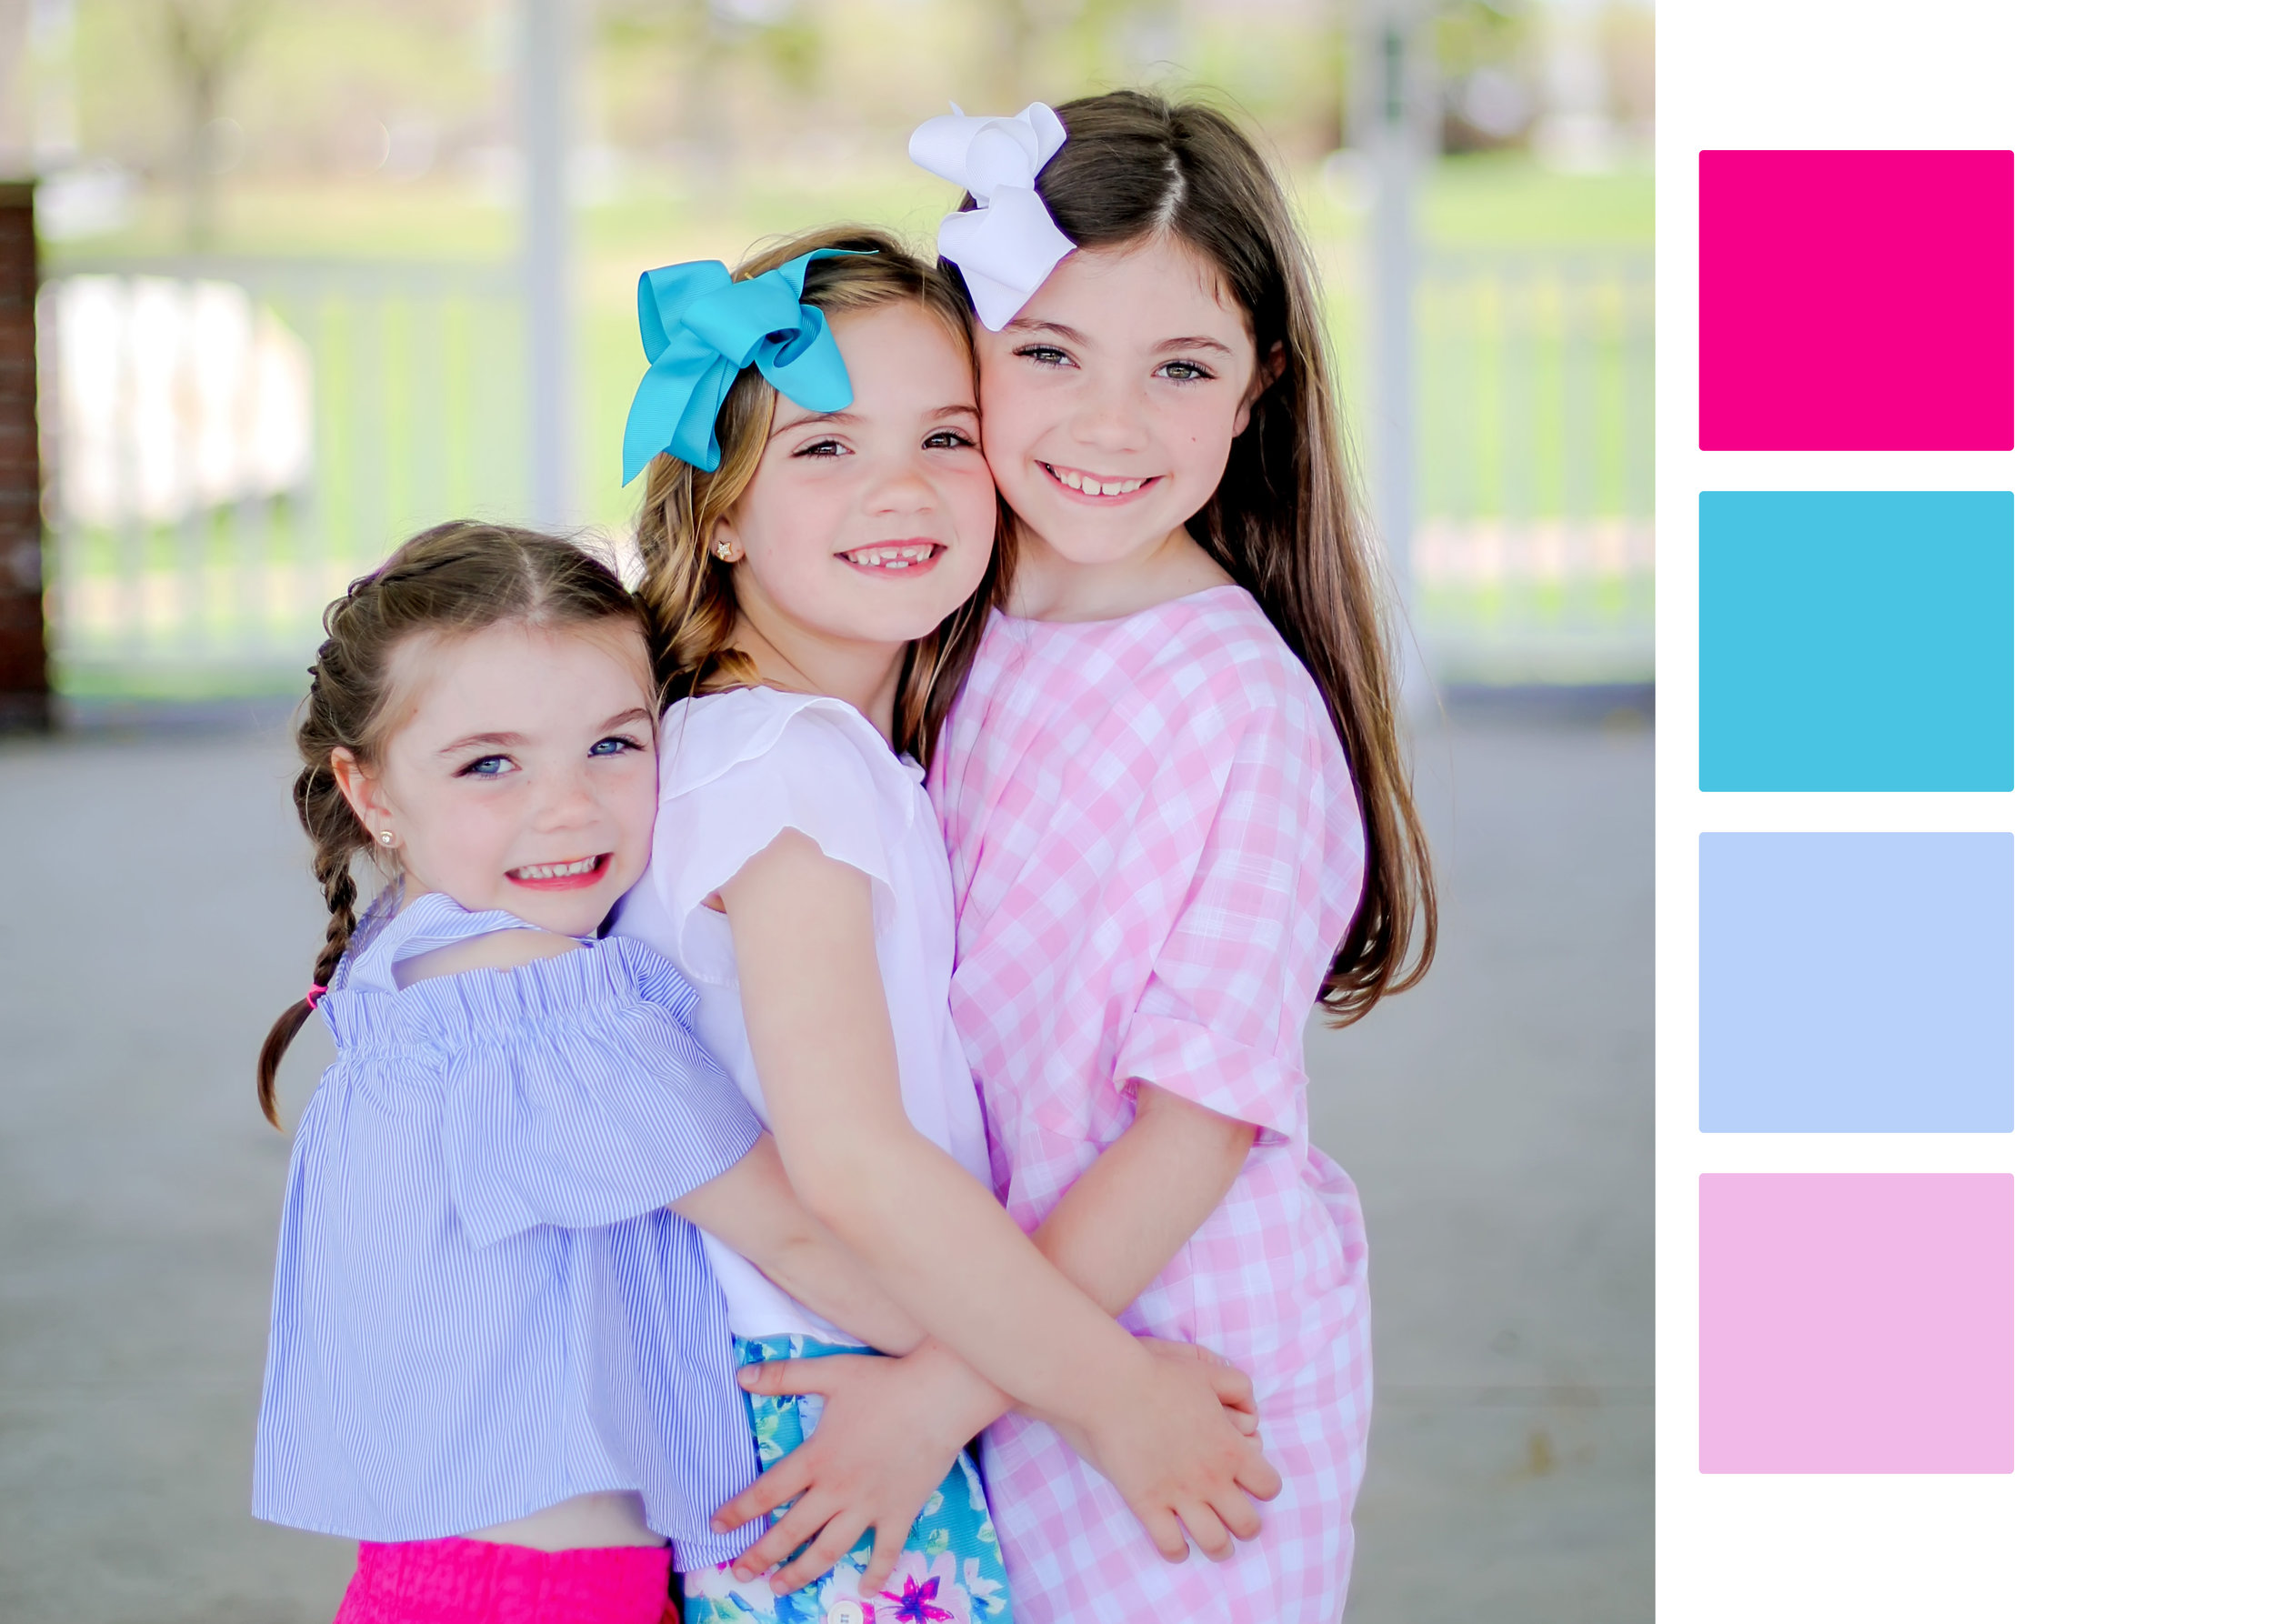 bright pink and blue color scheme for portraits.jpg